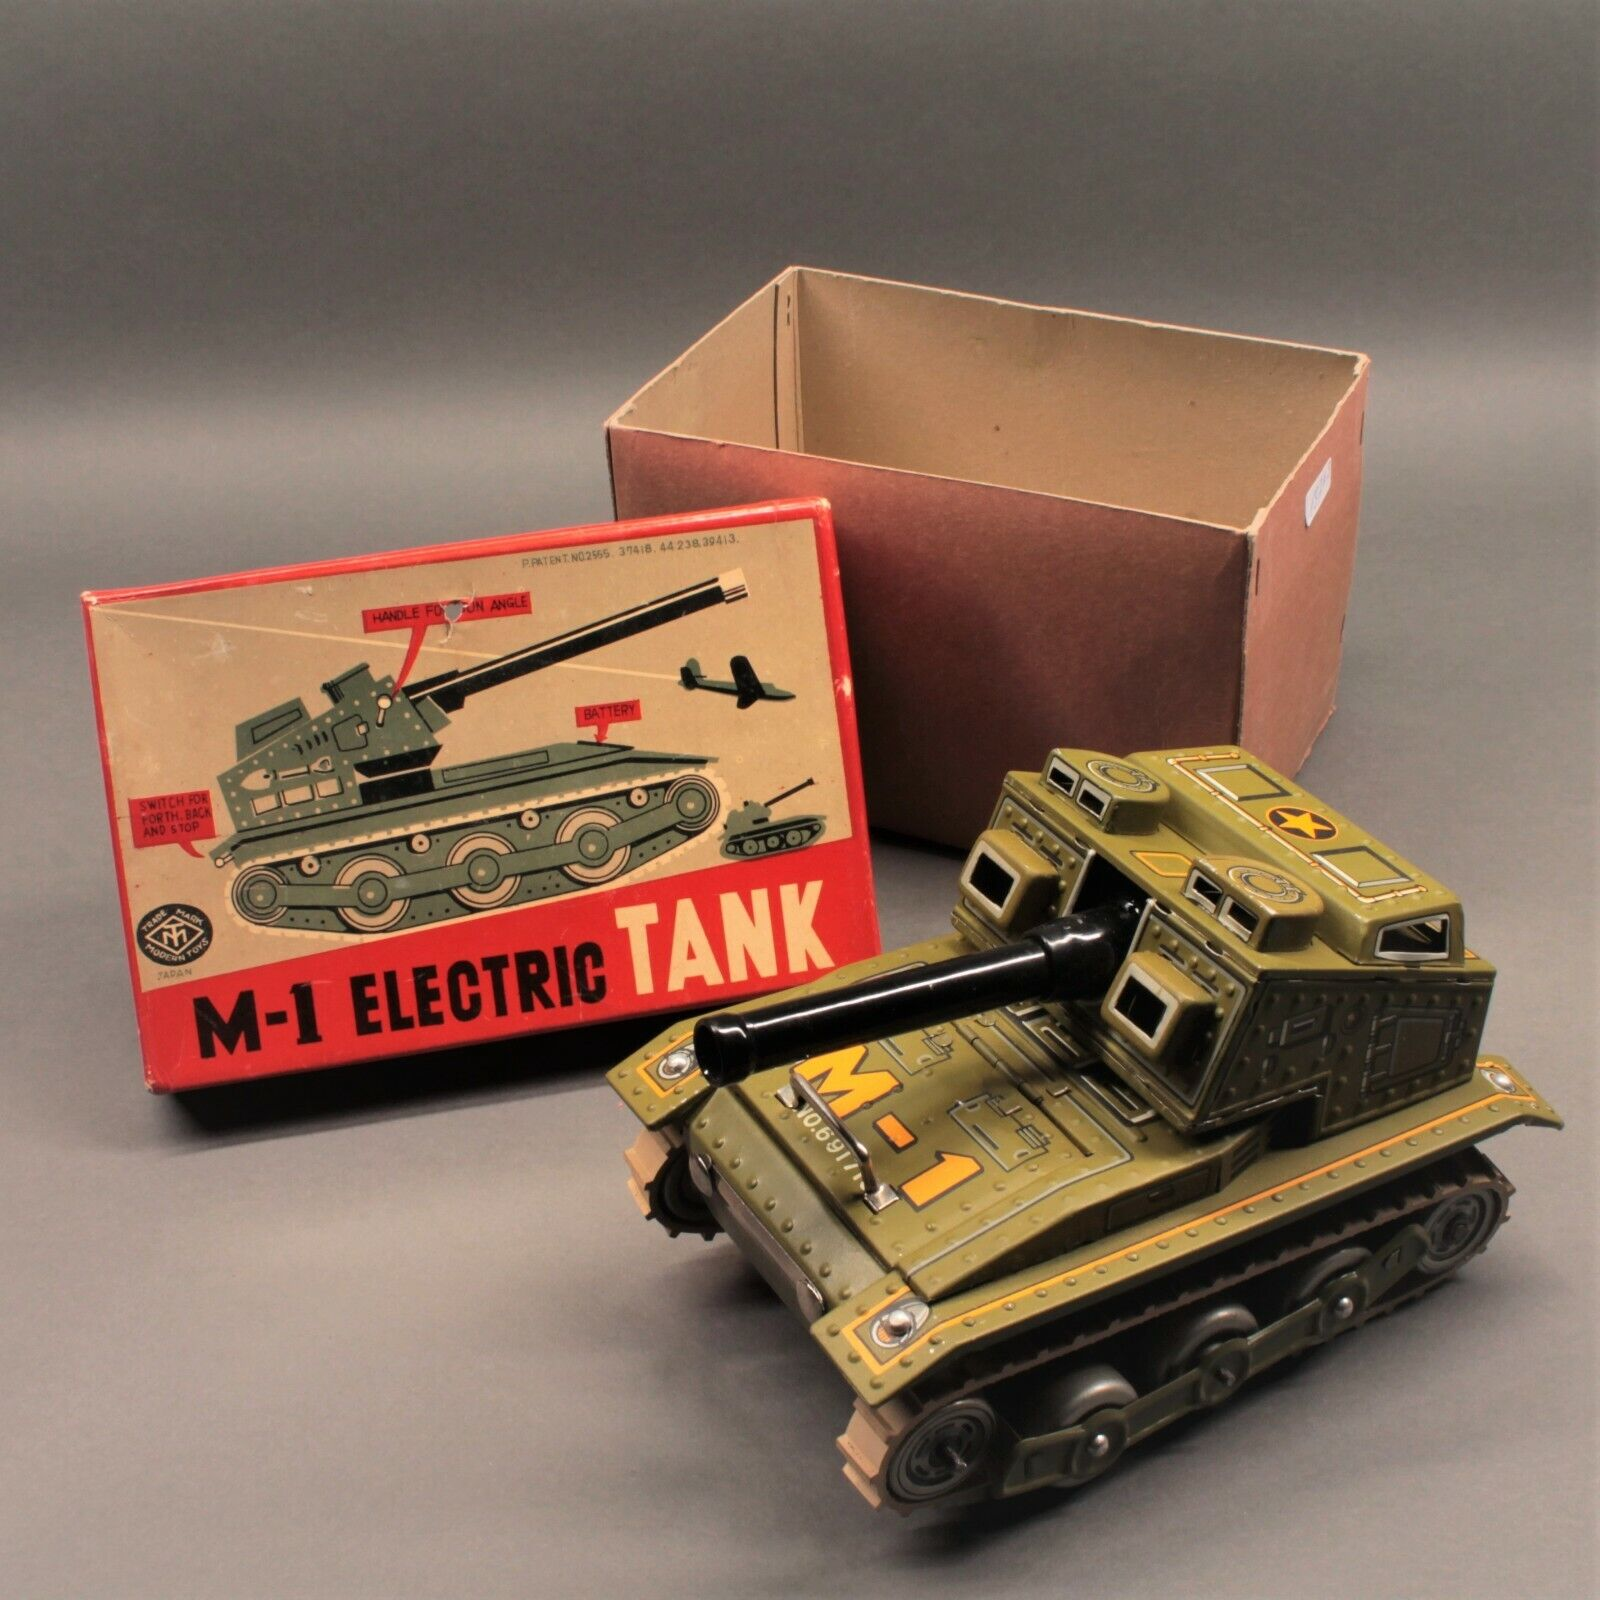 Modern toys-tank m1 electric-old toy-tank